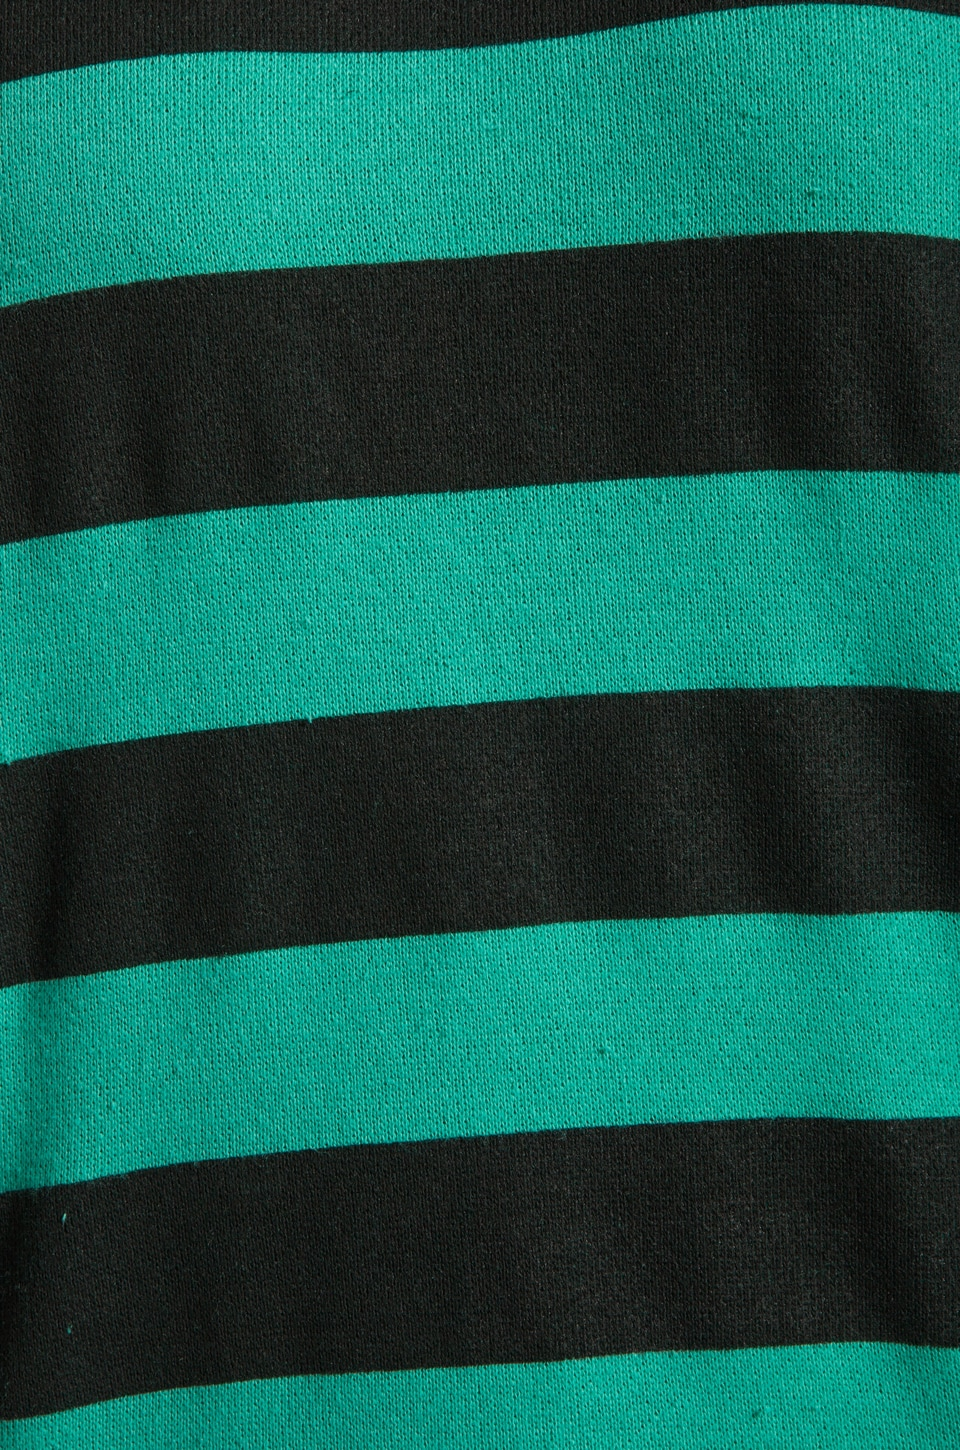 Pencey Standard Football Crew Sweatshirt in Green